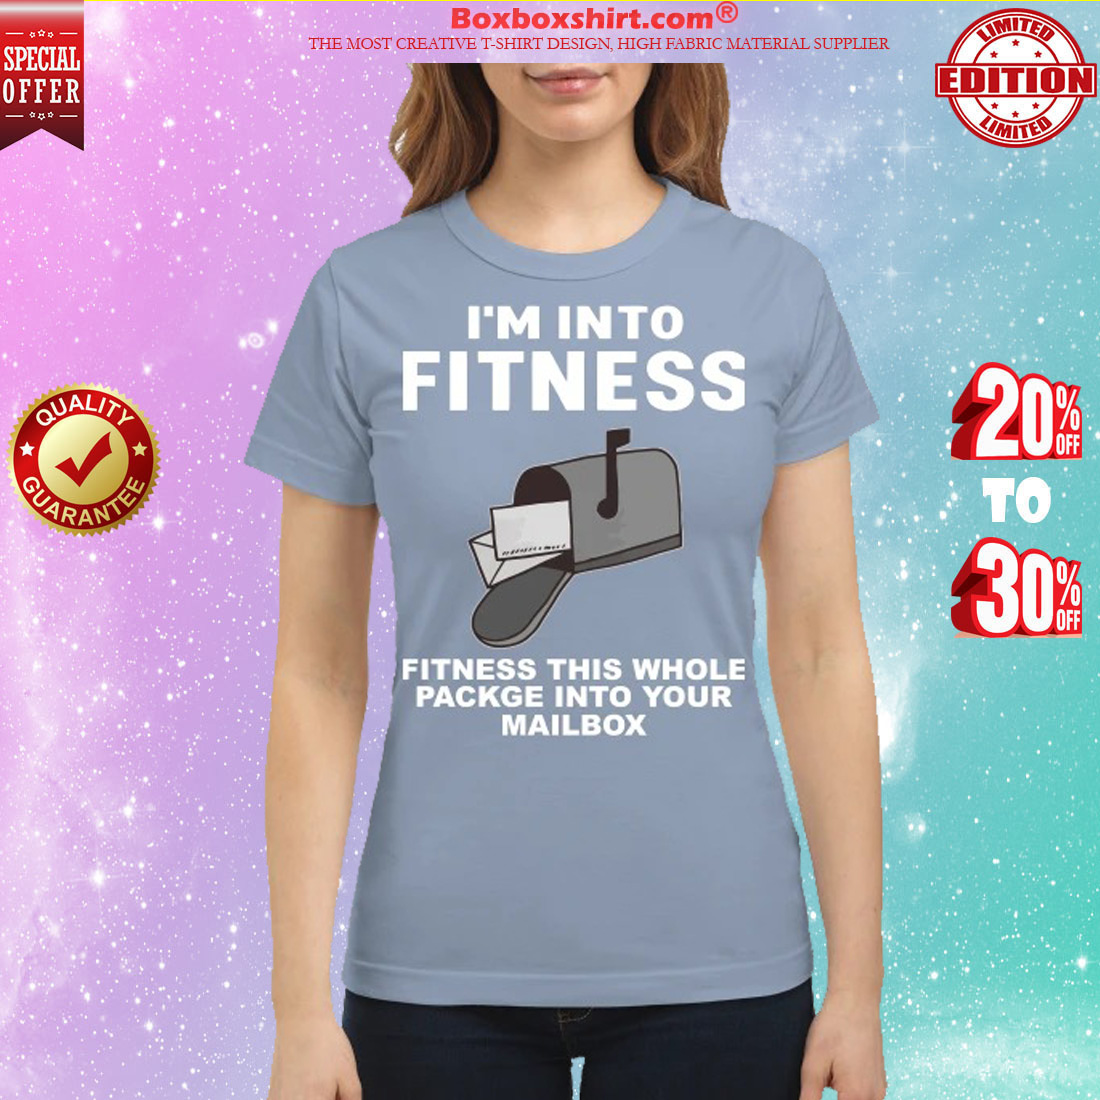 I'm into fitness fitness this whole package into your mailbox classic shirt